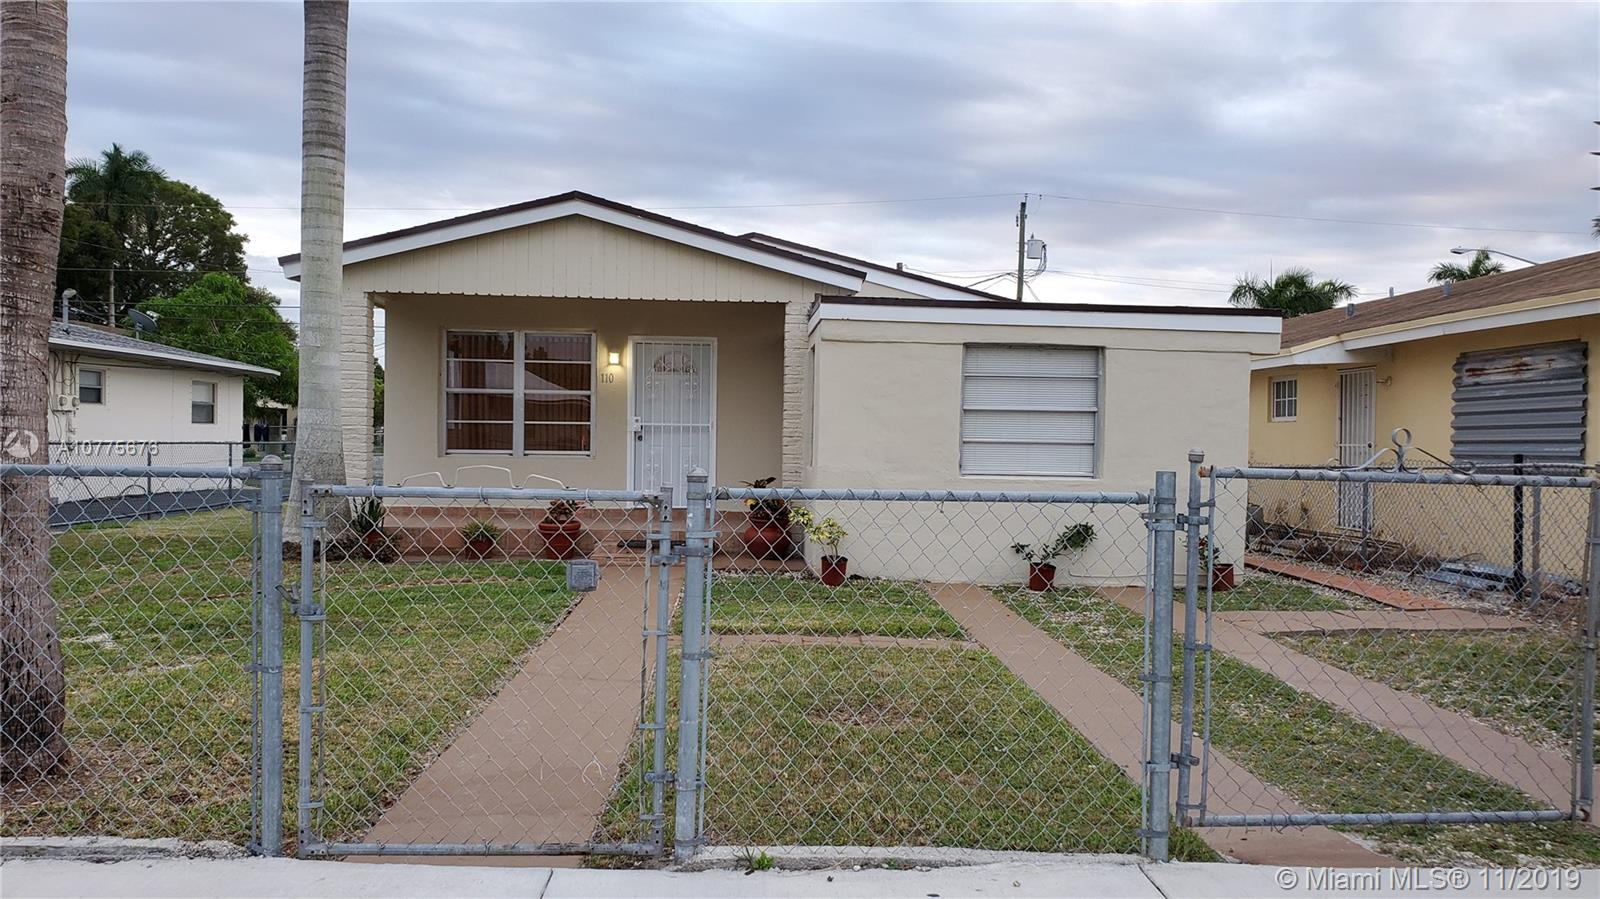 110 NE 9th Ct, Homestead in Miami-dade County County, FL 33030 Home for Sale